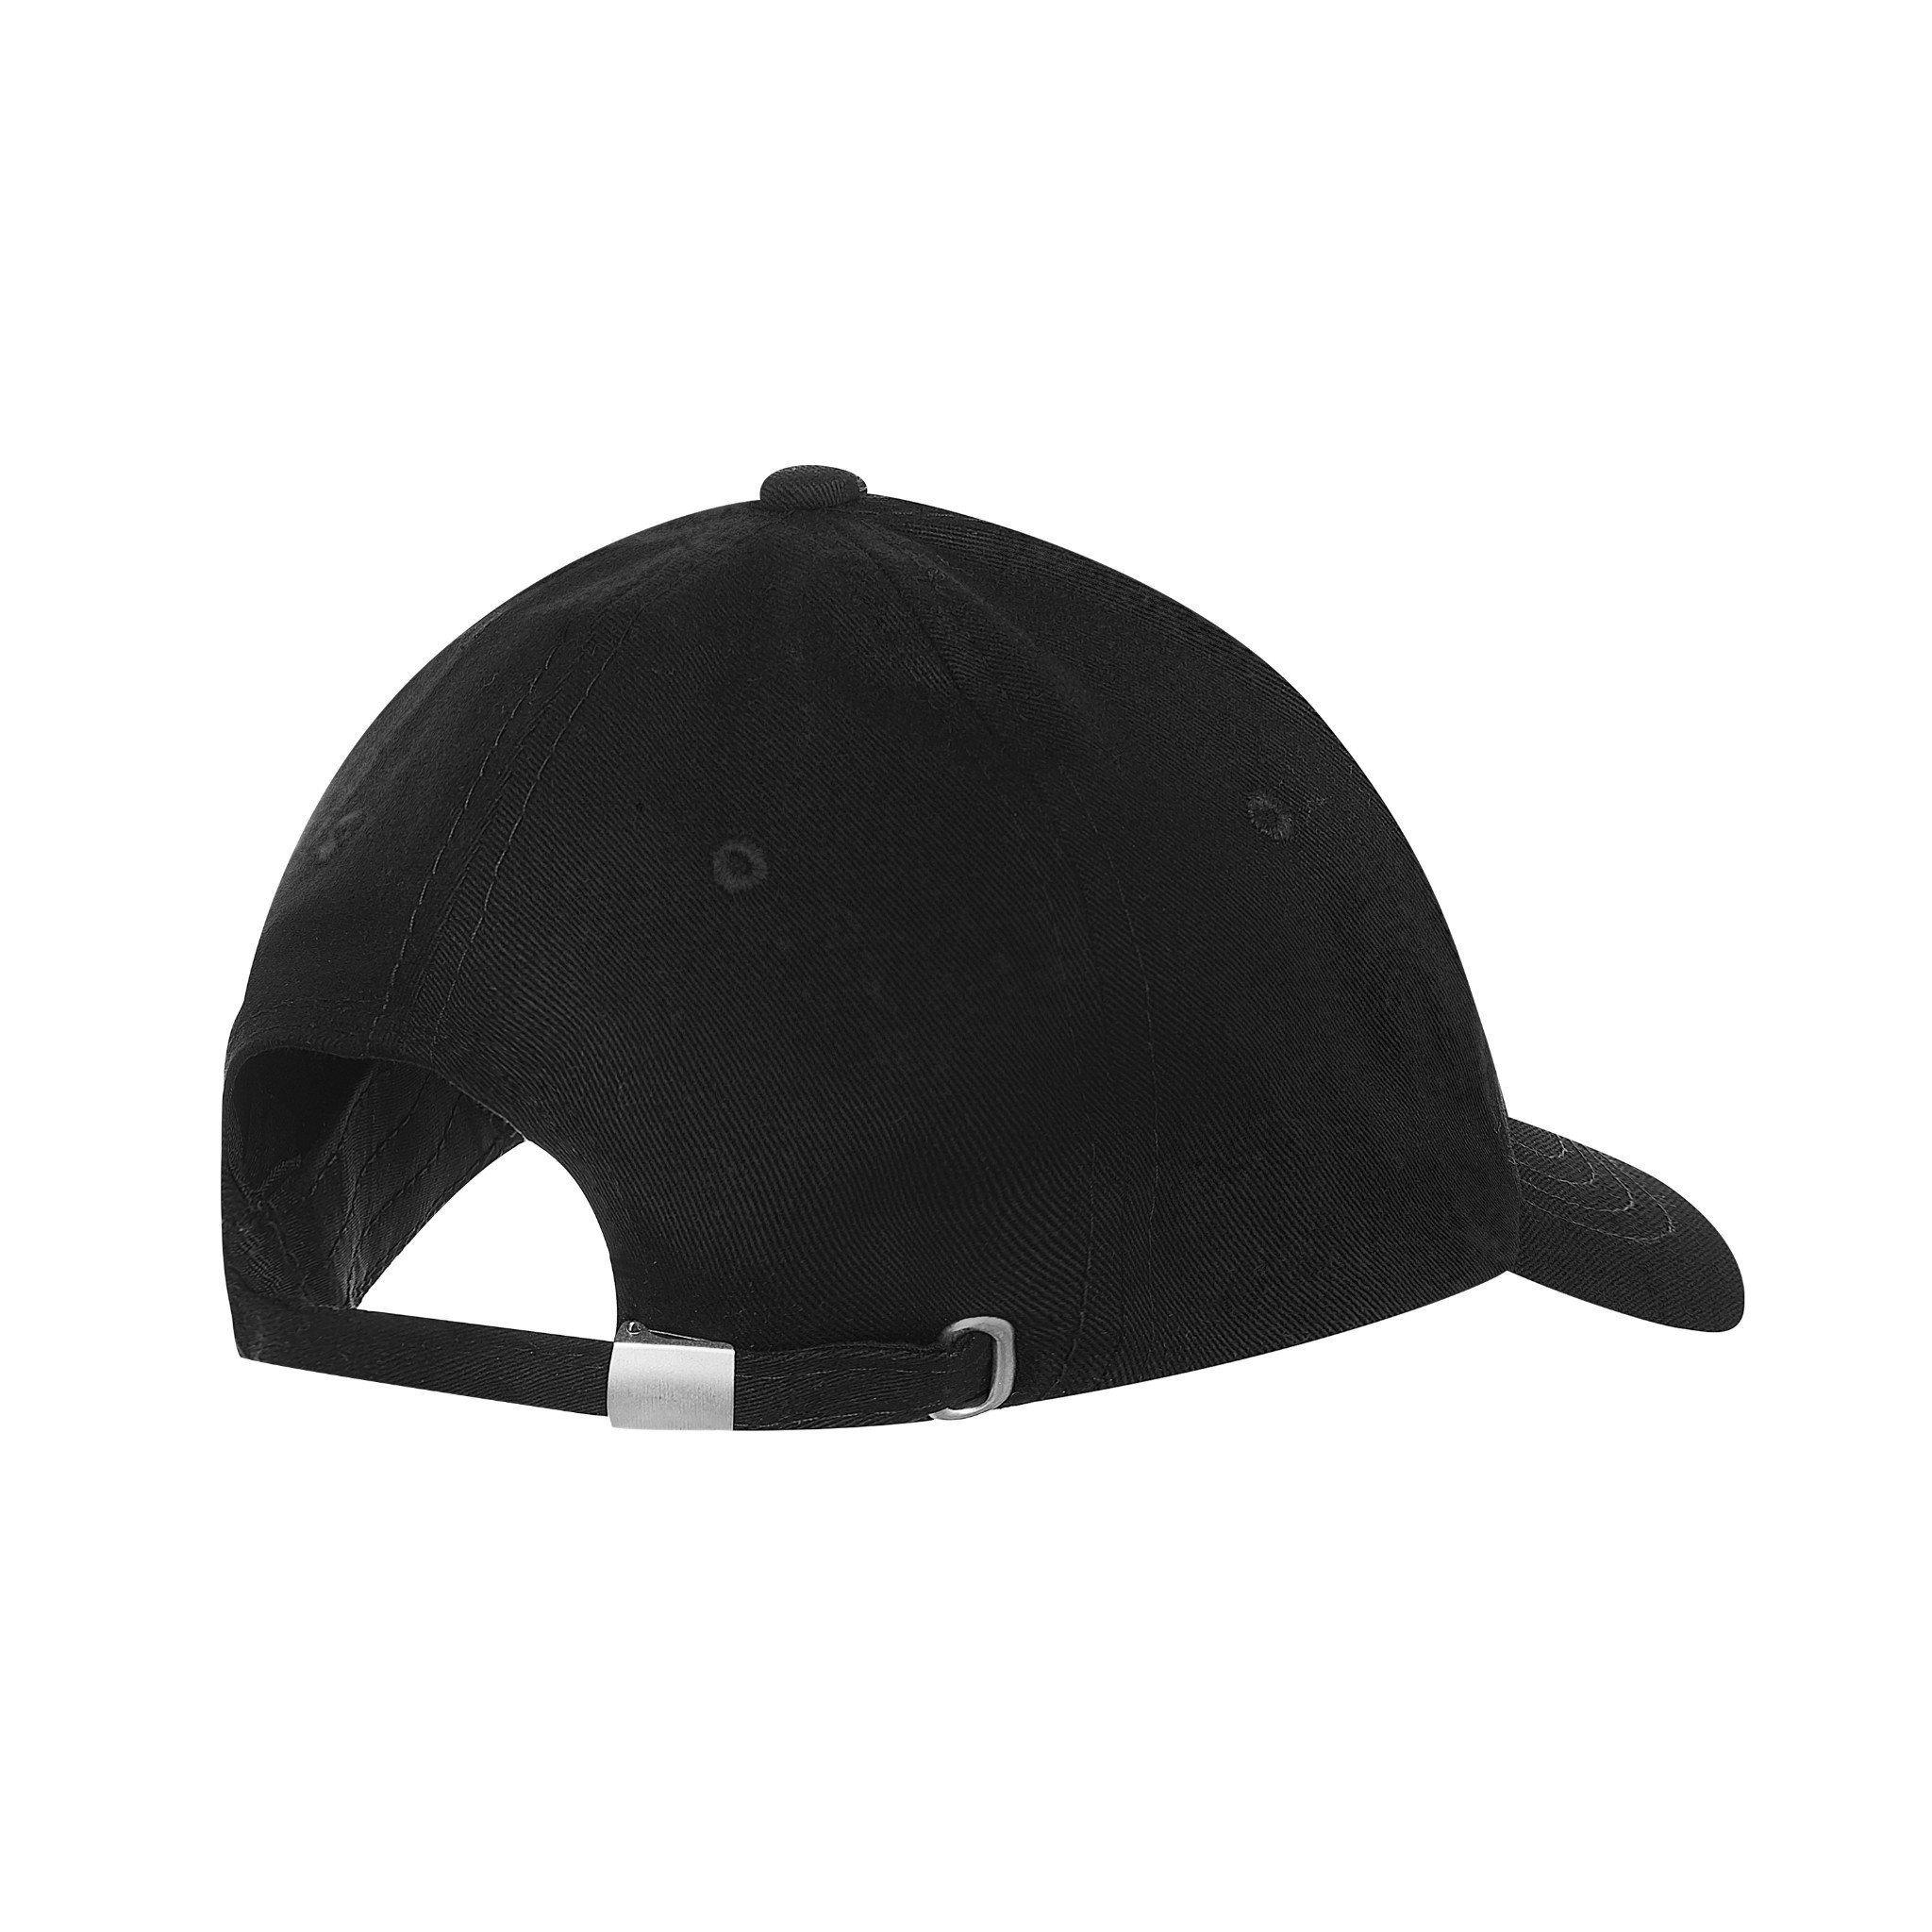 INFINITE CAP (BLACK) - RED WORDING